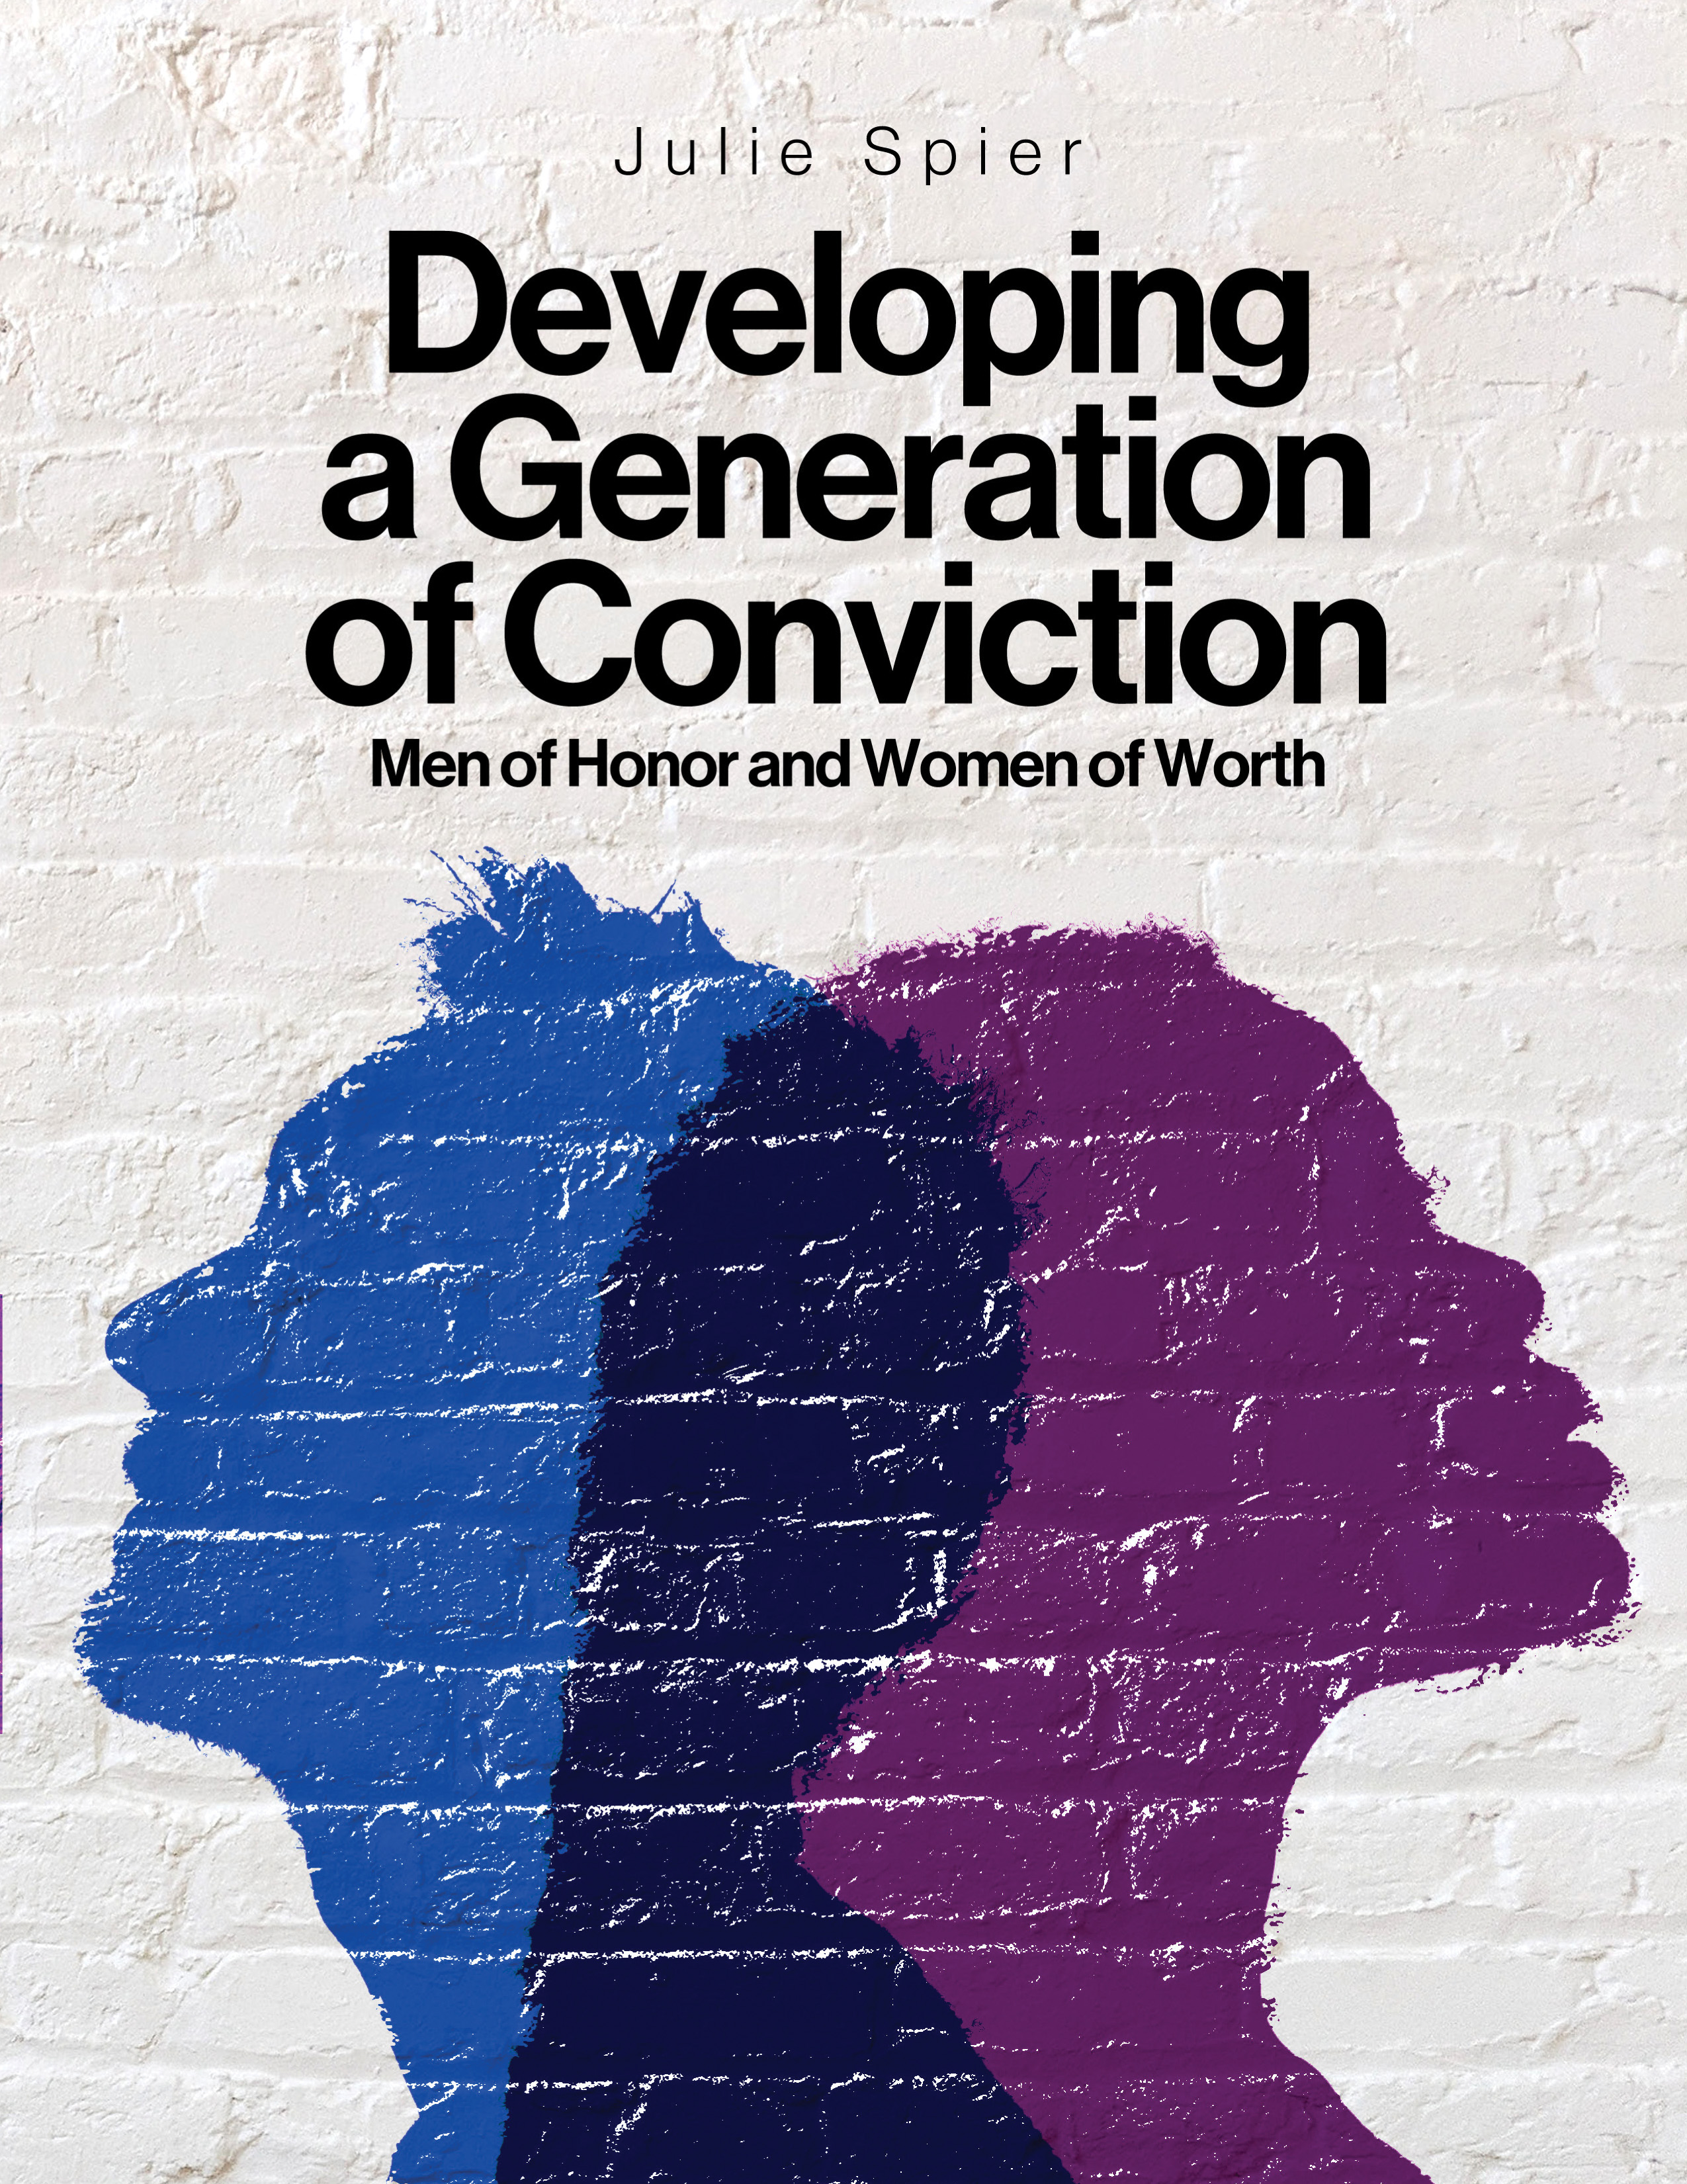 Developing a Generation of Conviction